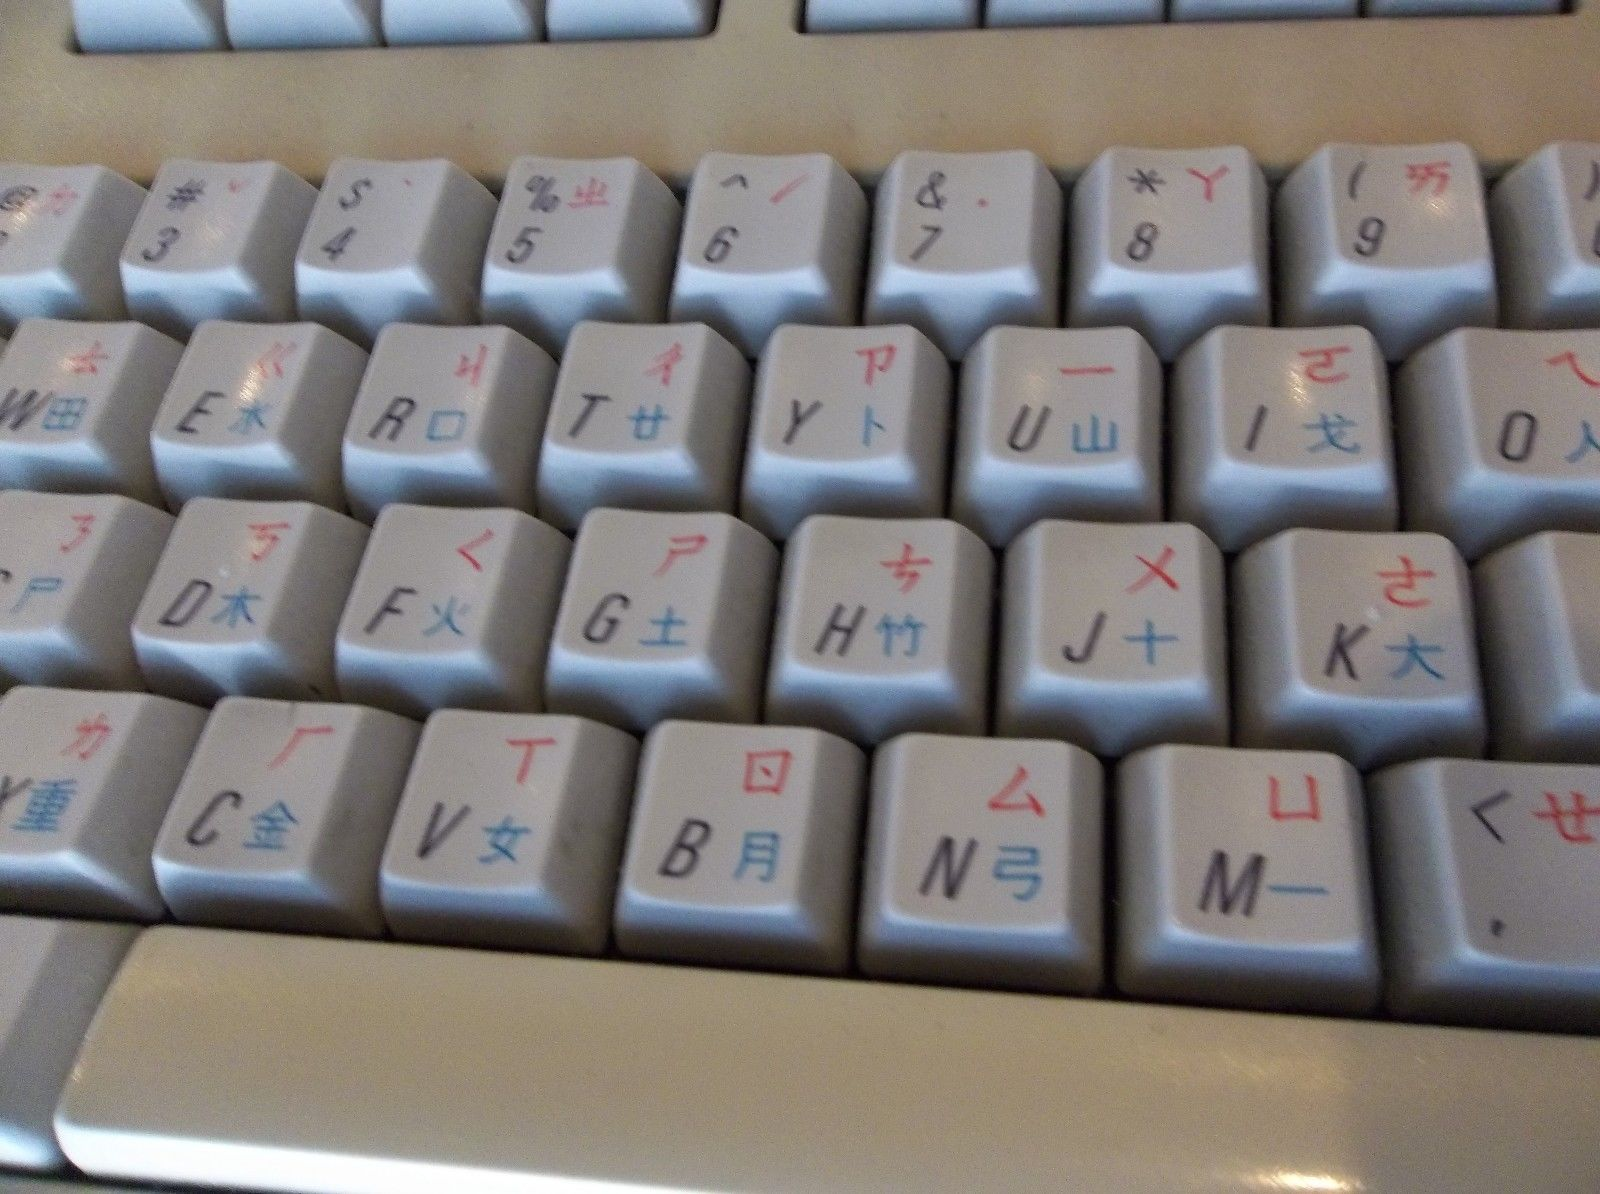 Russian Keyboard Symbol